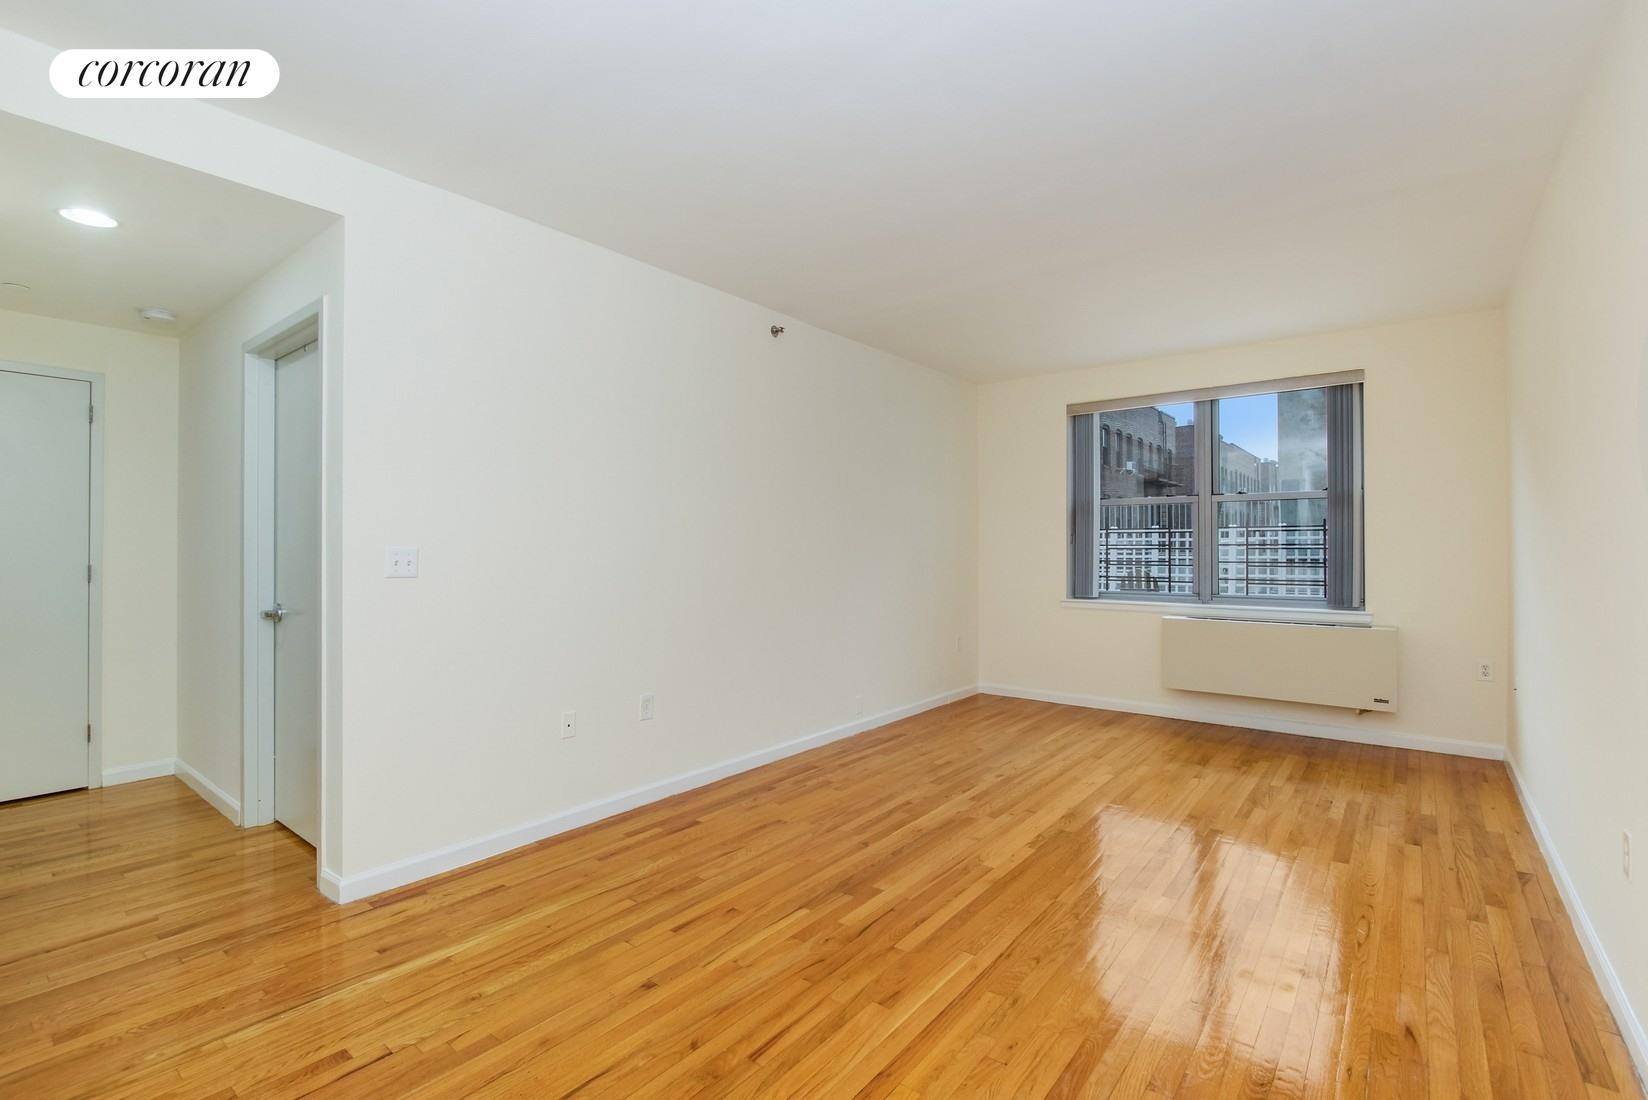 41-02 Queens Boulevard, 2g, Living Room